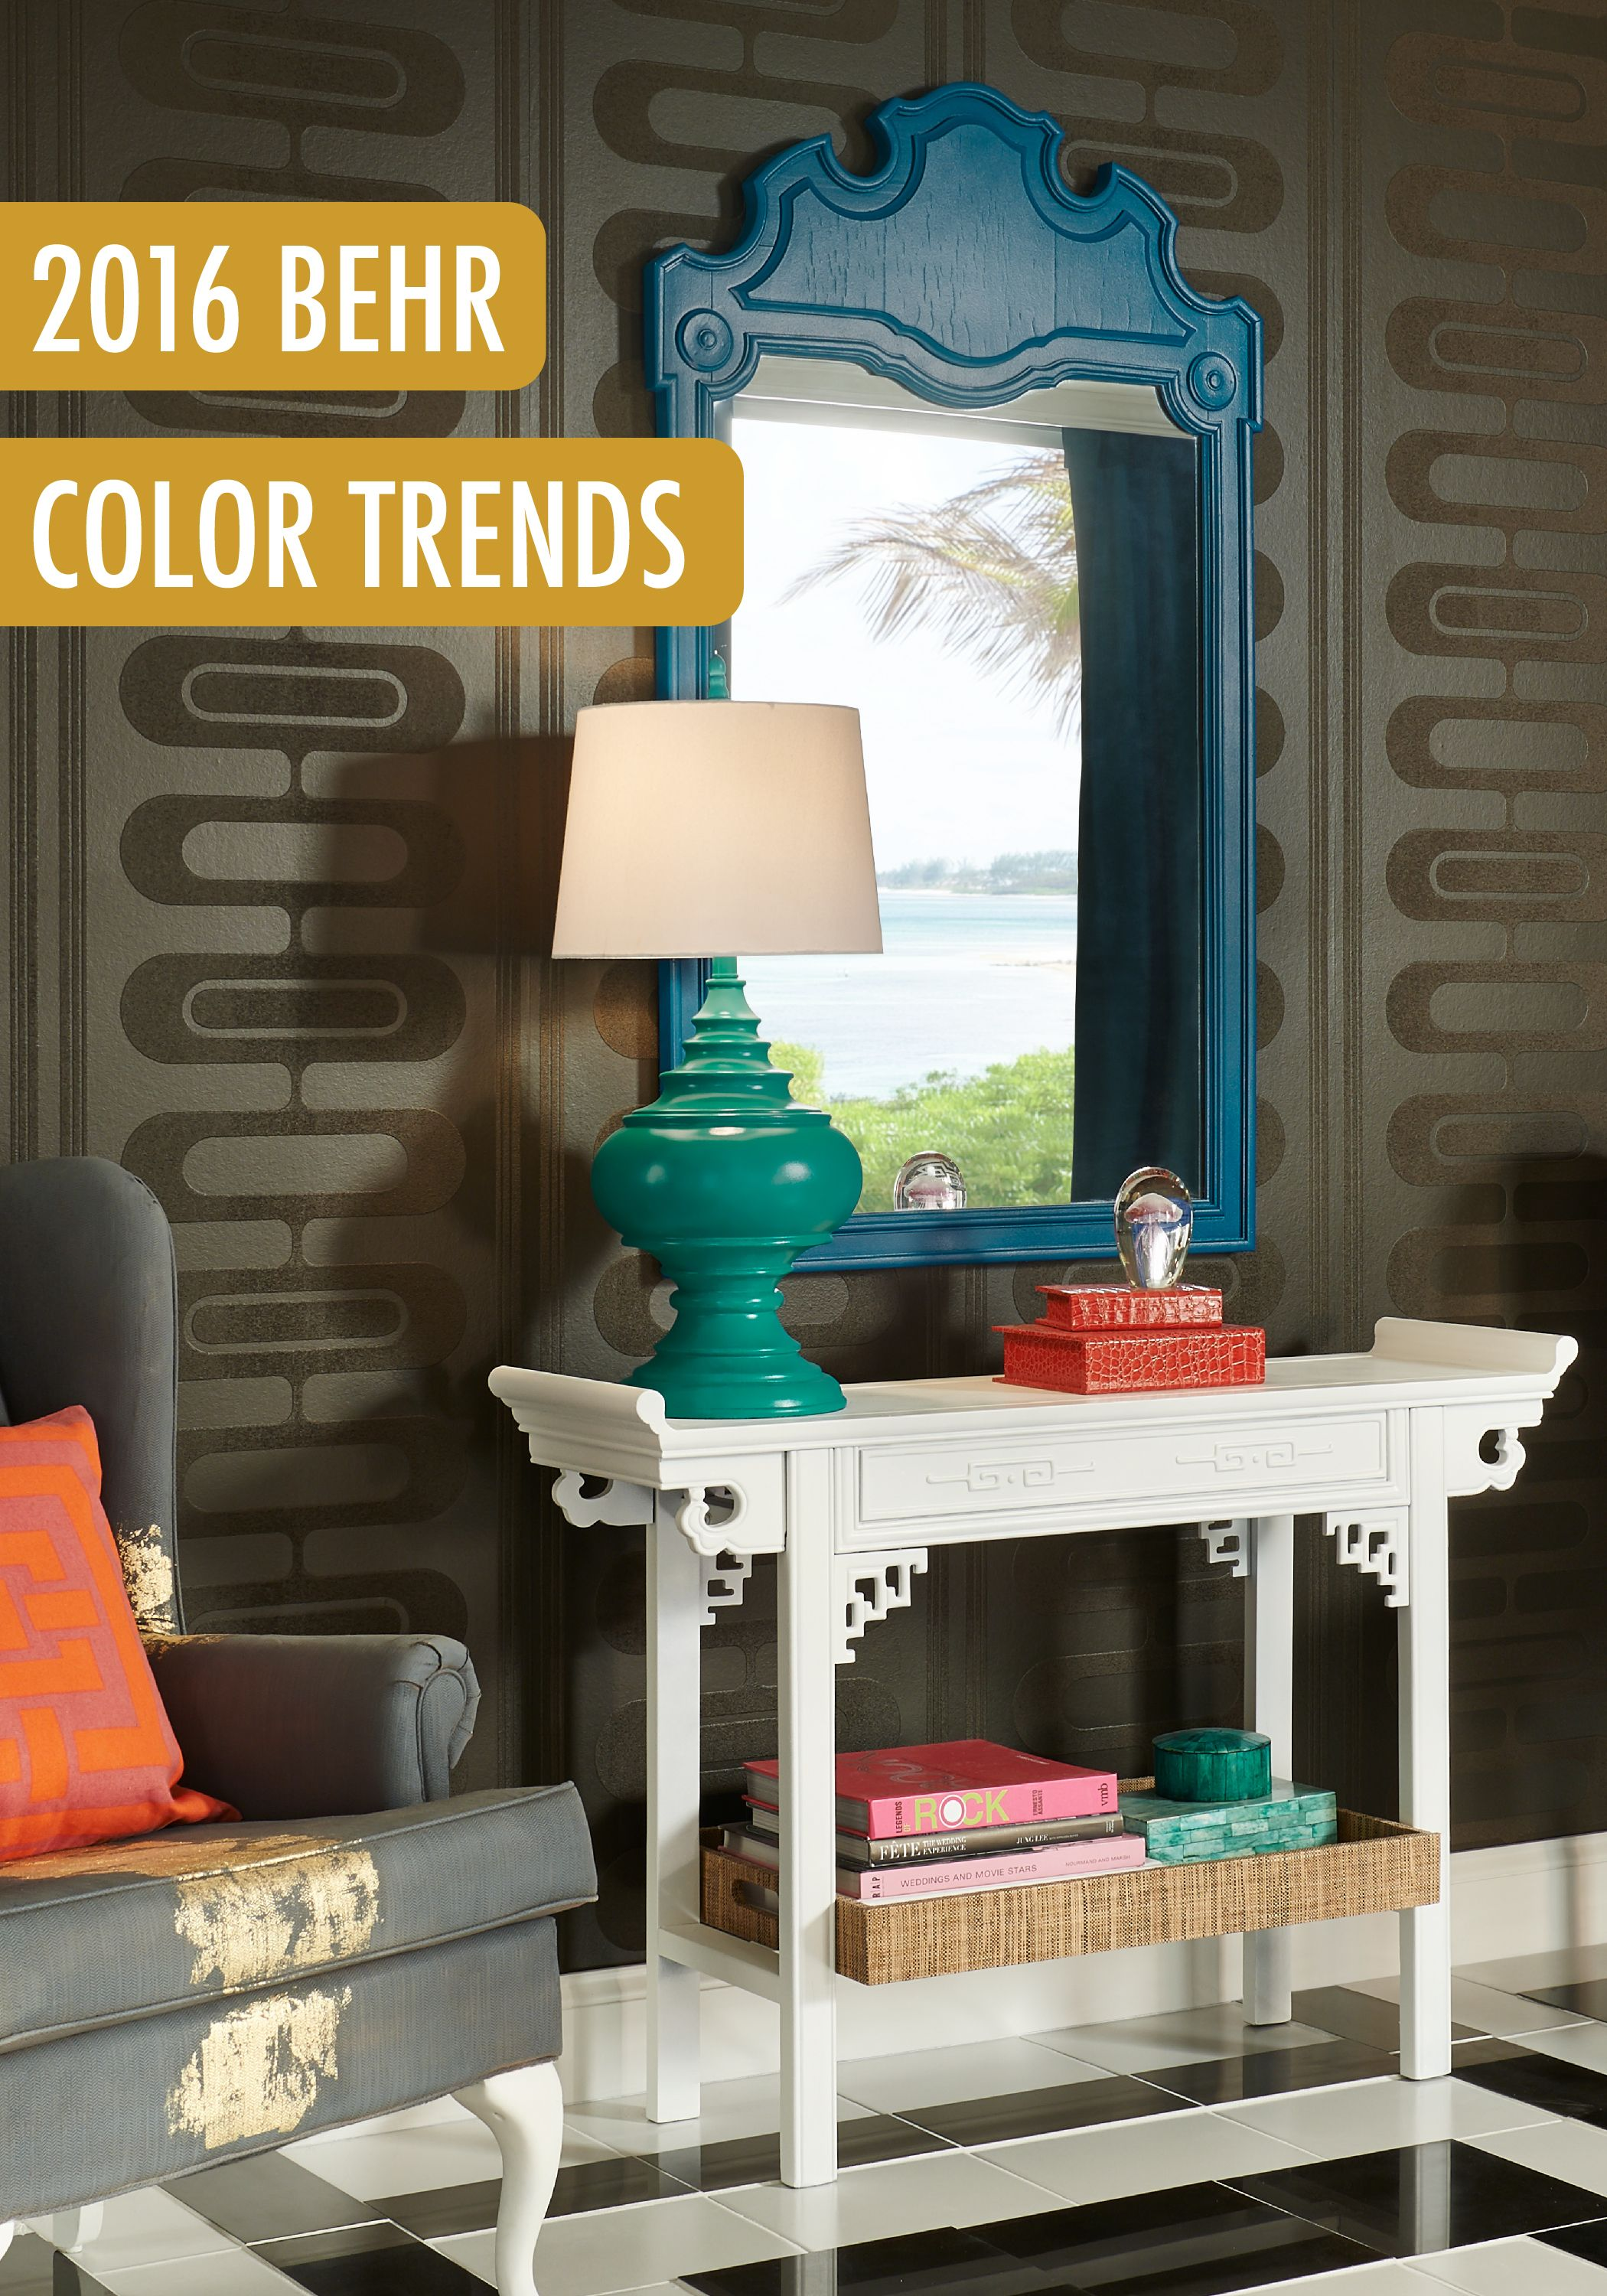 Jewel Toned Hues Like Behr Paint In Pagoda, Emperors Silk, And